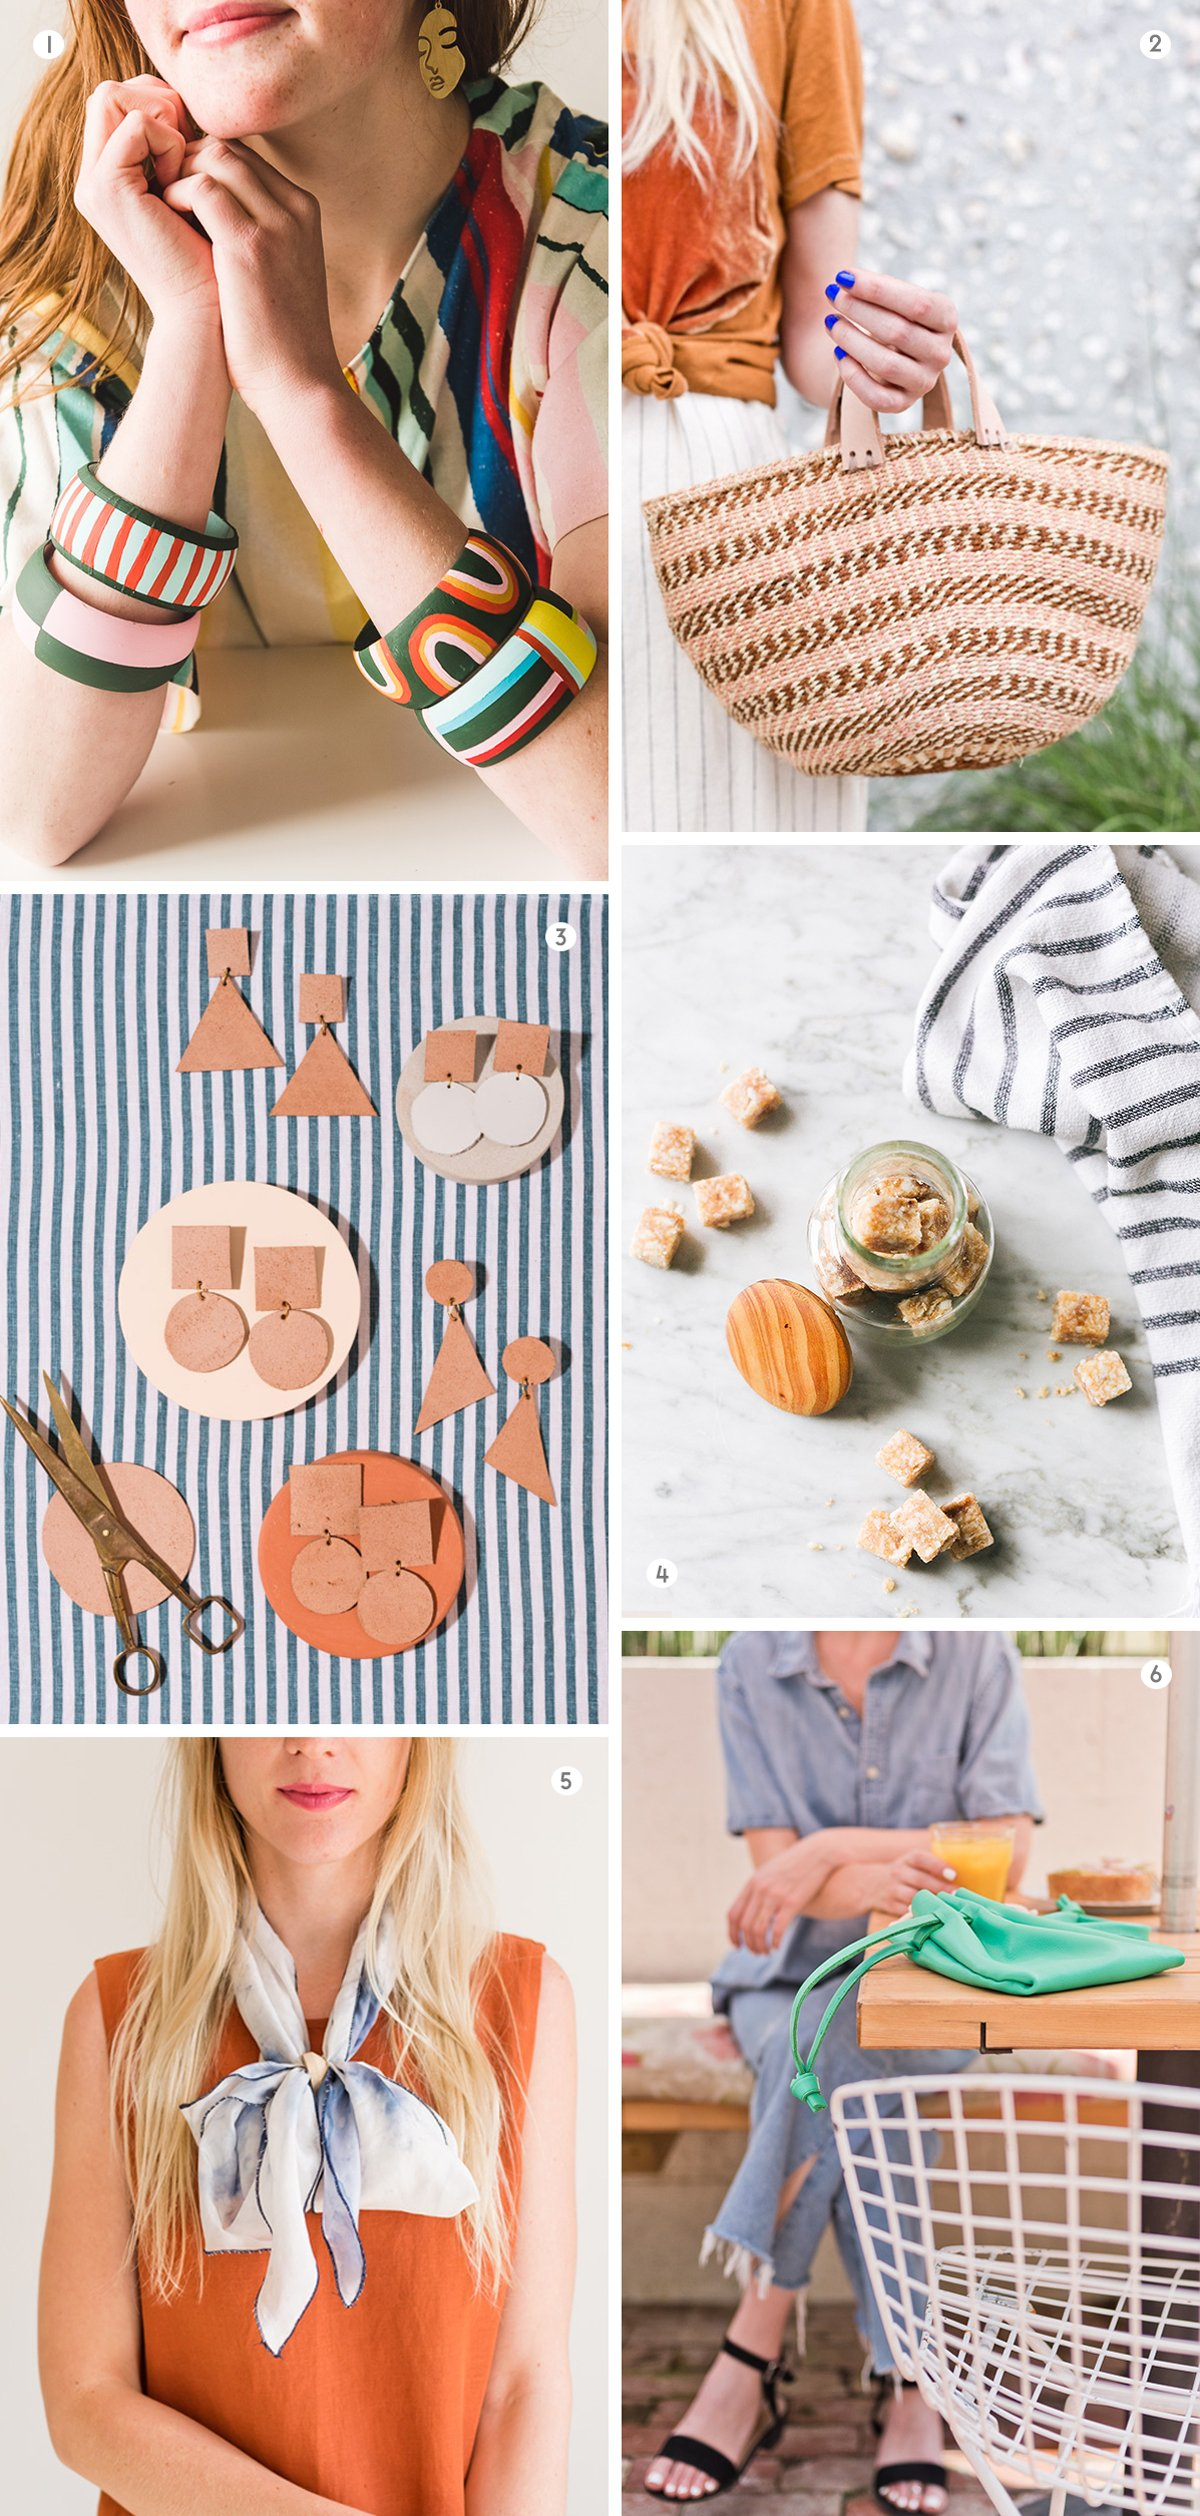 6 DIYs to Try this Weekend #fashiondiy #weekendproject